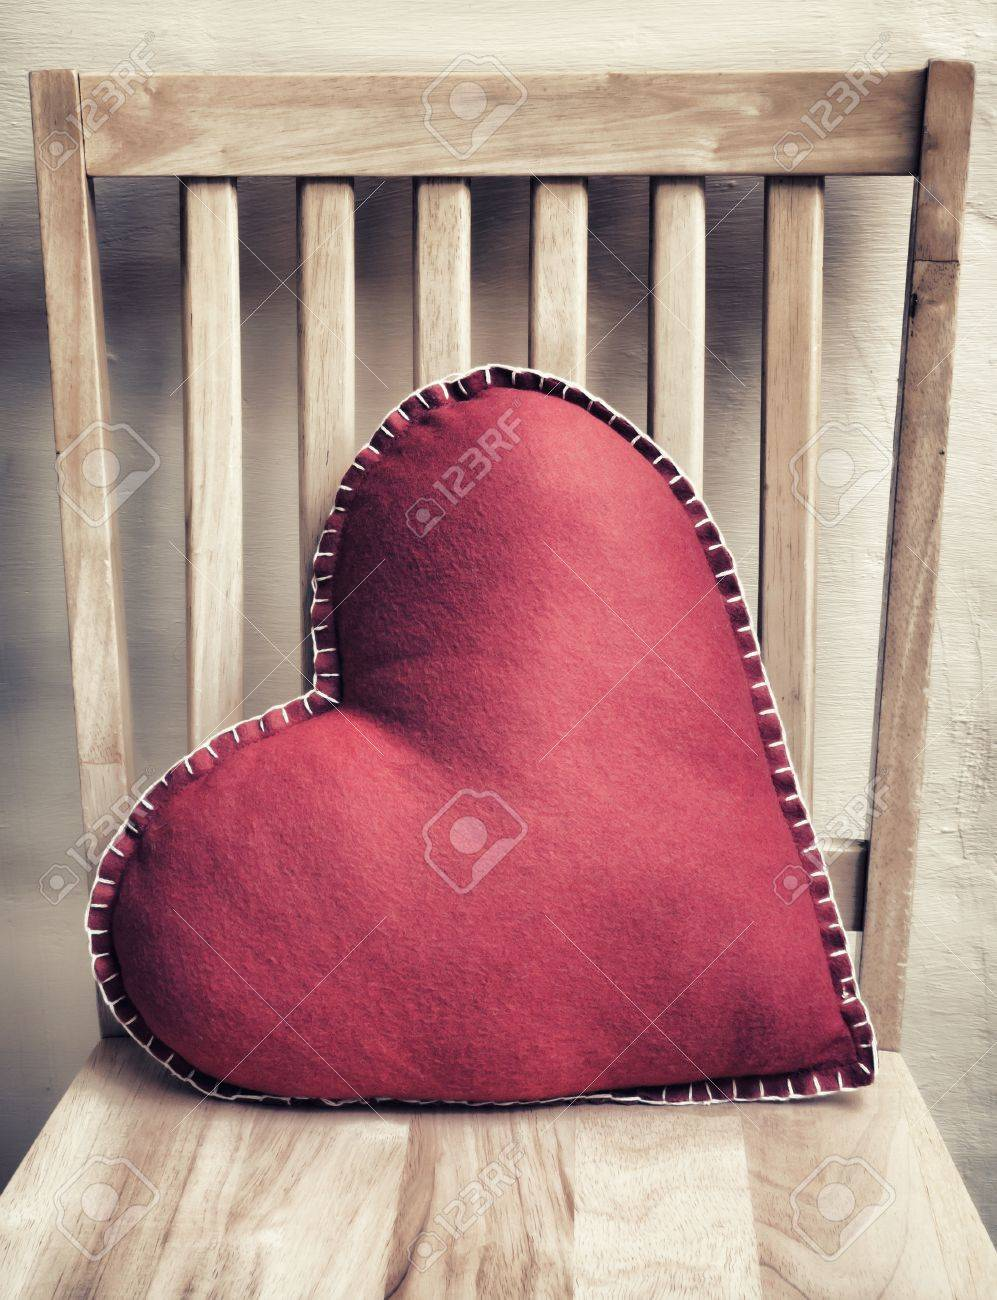 Heart Shaped Pillow On Wooden Chair With Vintage Look Stock Photo   17712392